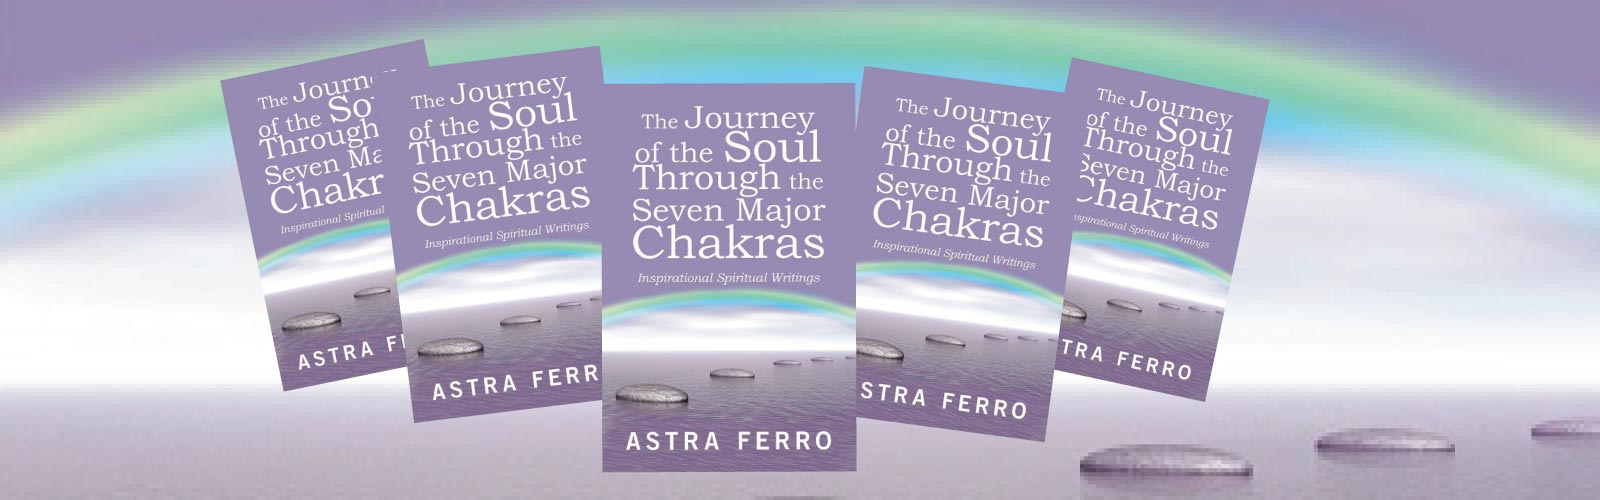 The Journey of the Soul through the Seven Major Chakras - new book from Astra Ferro